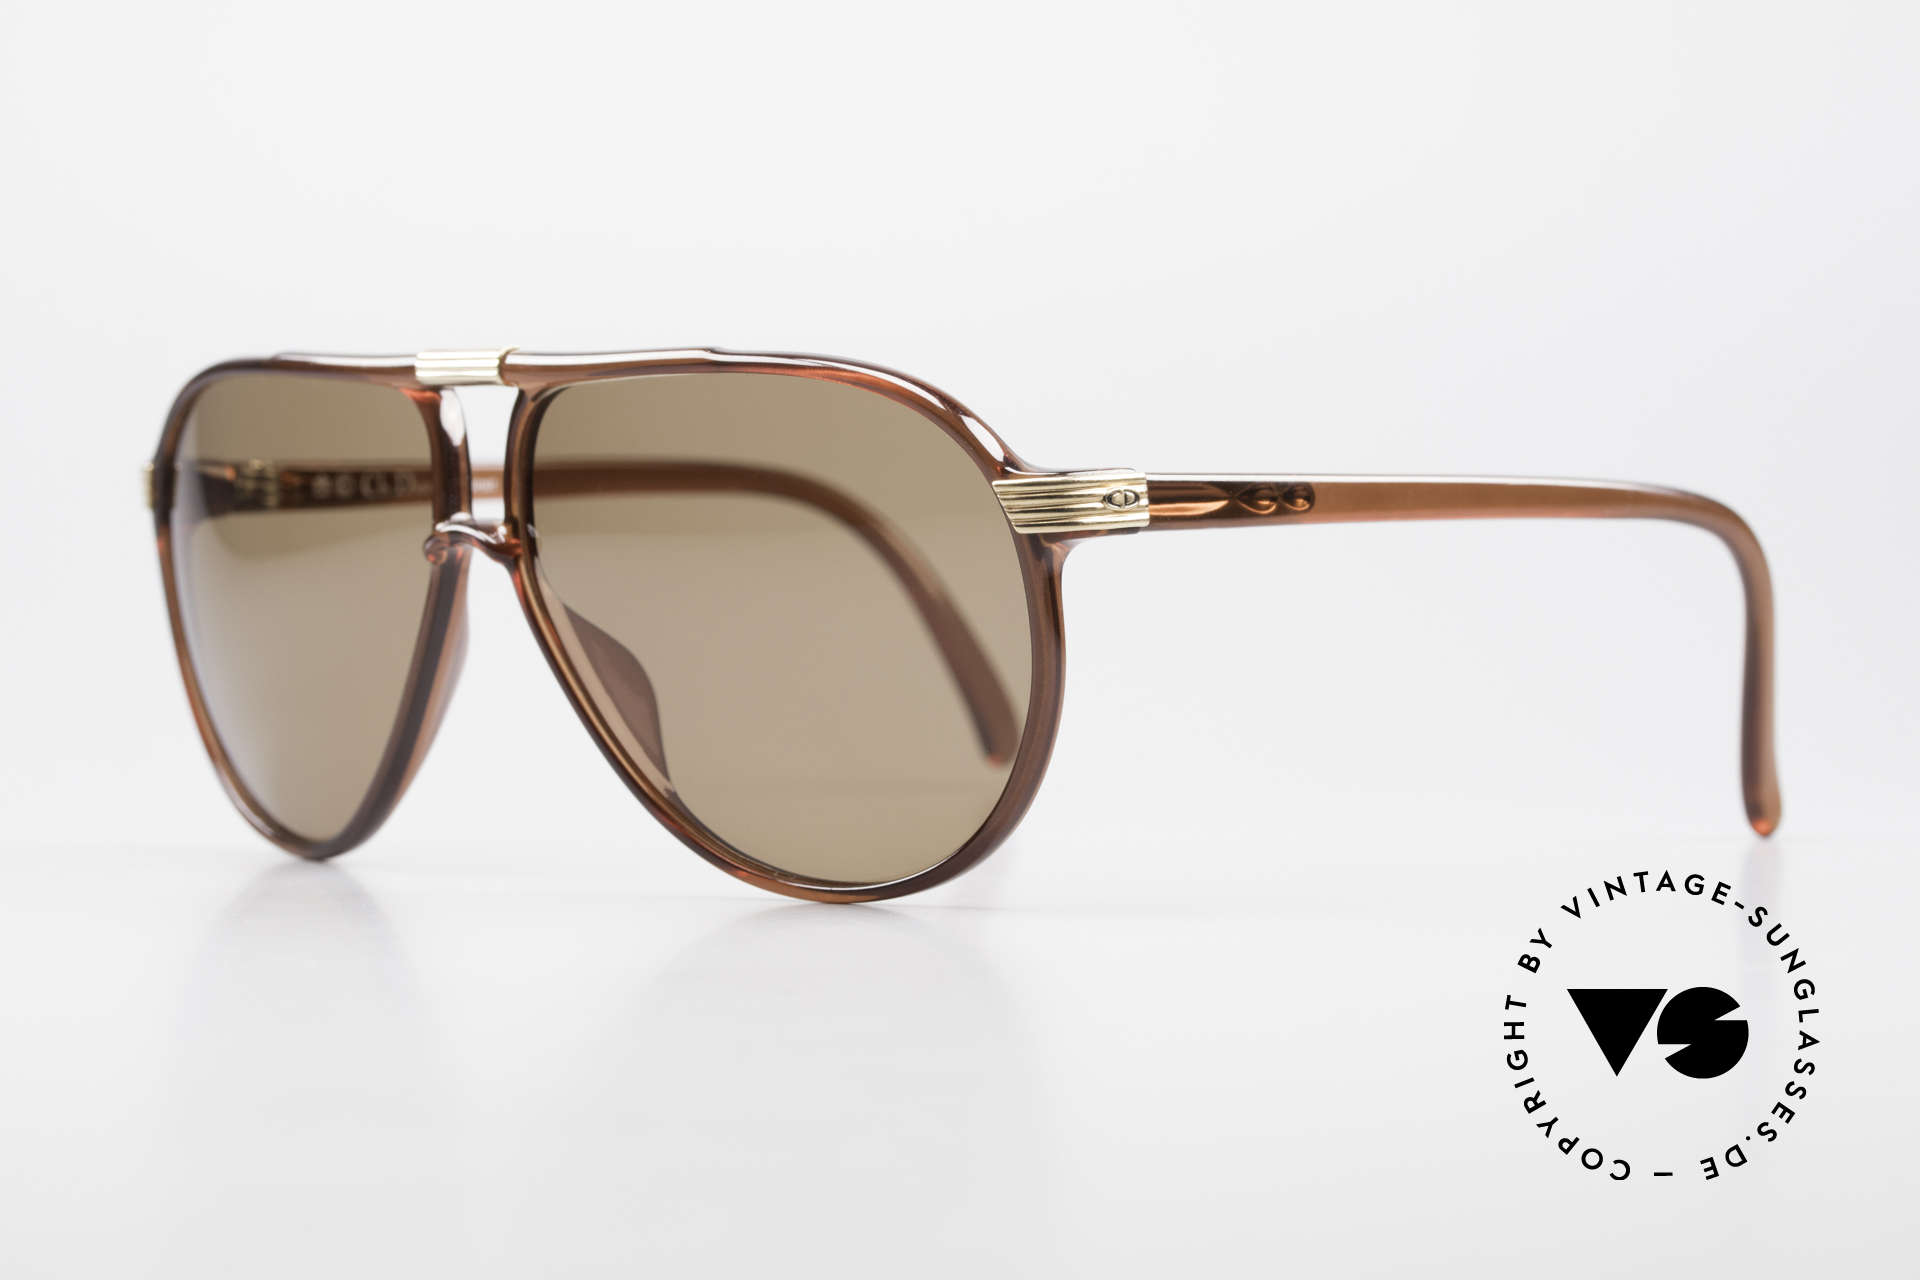 Christian Dior 2300 80's Aviator Sunglasses Optyl, TOP quality thanks to the great OPTYL material, Made for Men